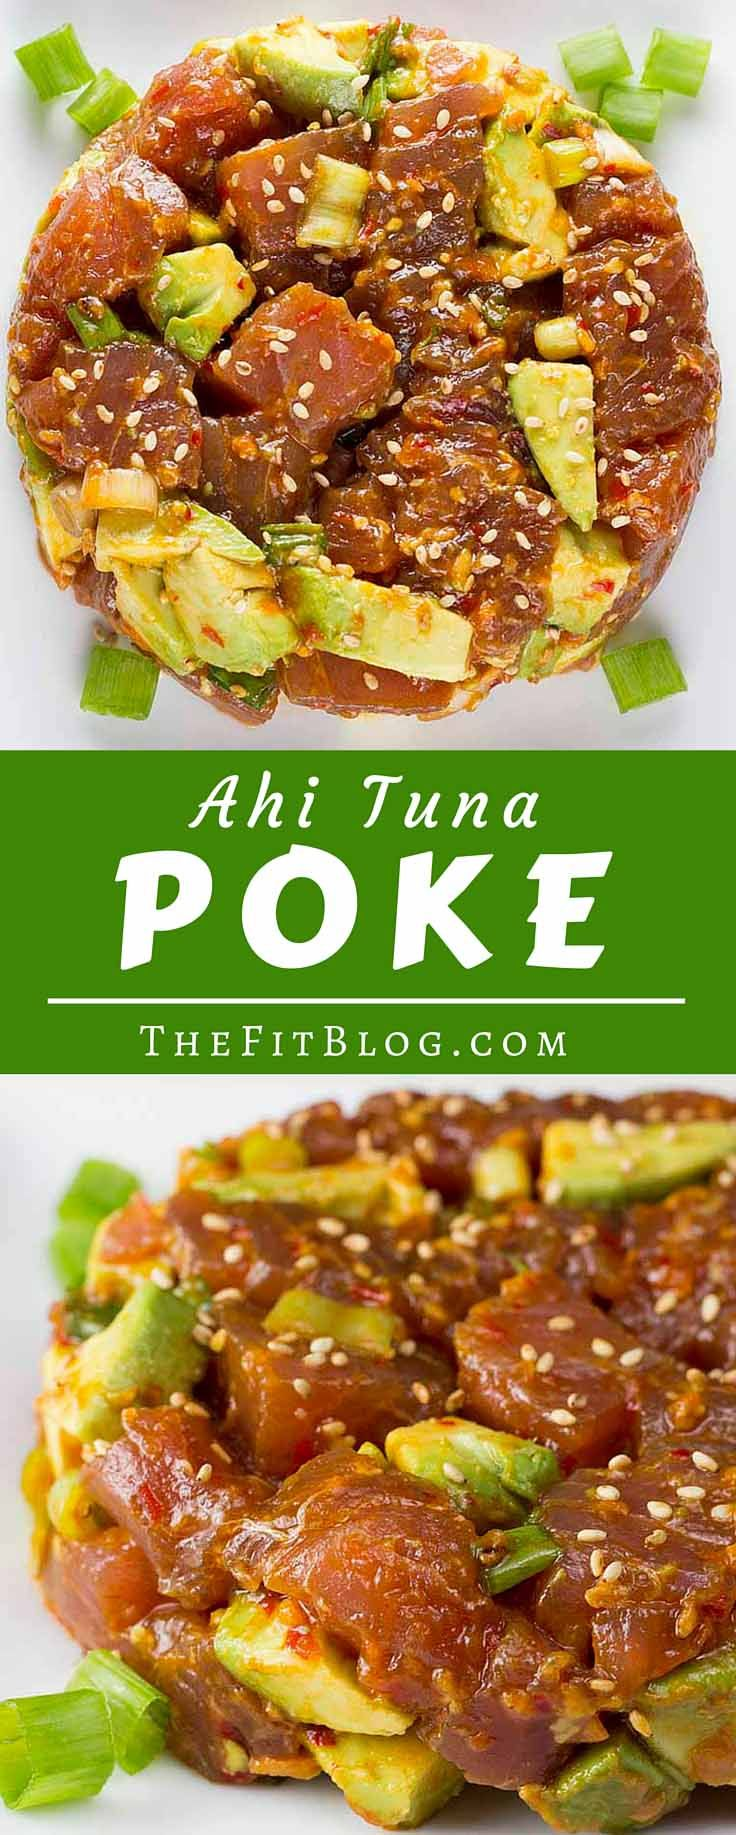 Ahi Tuna Poke – This delicious Hawaiian appetizer mixes tuna, avocado, sesame oil and a light touch of chili. Easy, healthy and delicious. Takes less than 10 min to make. More